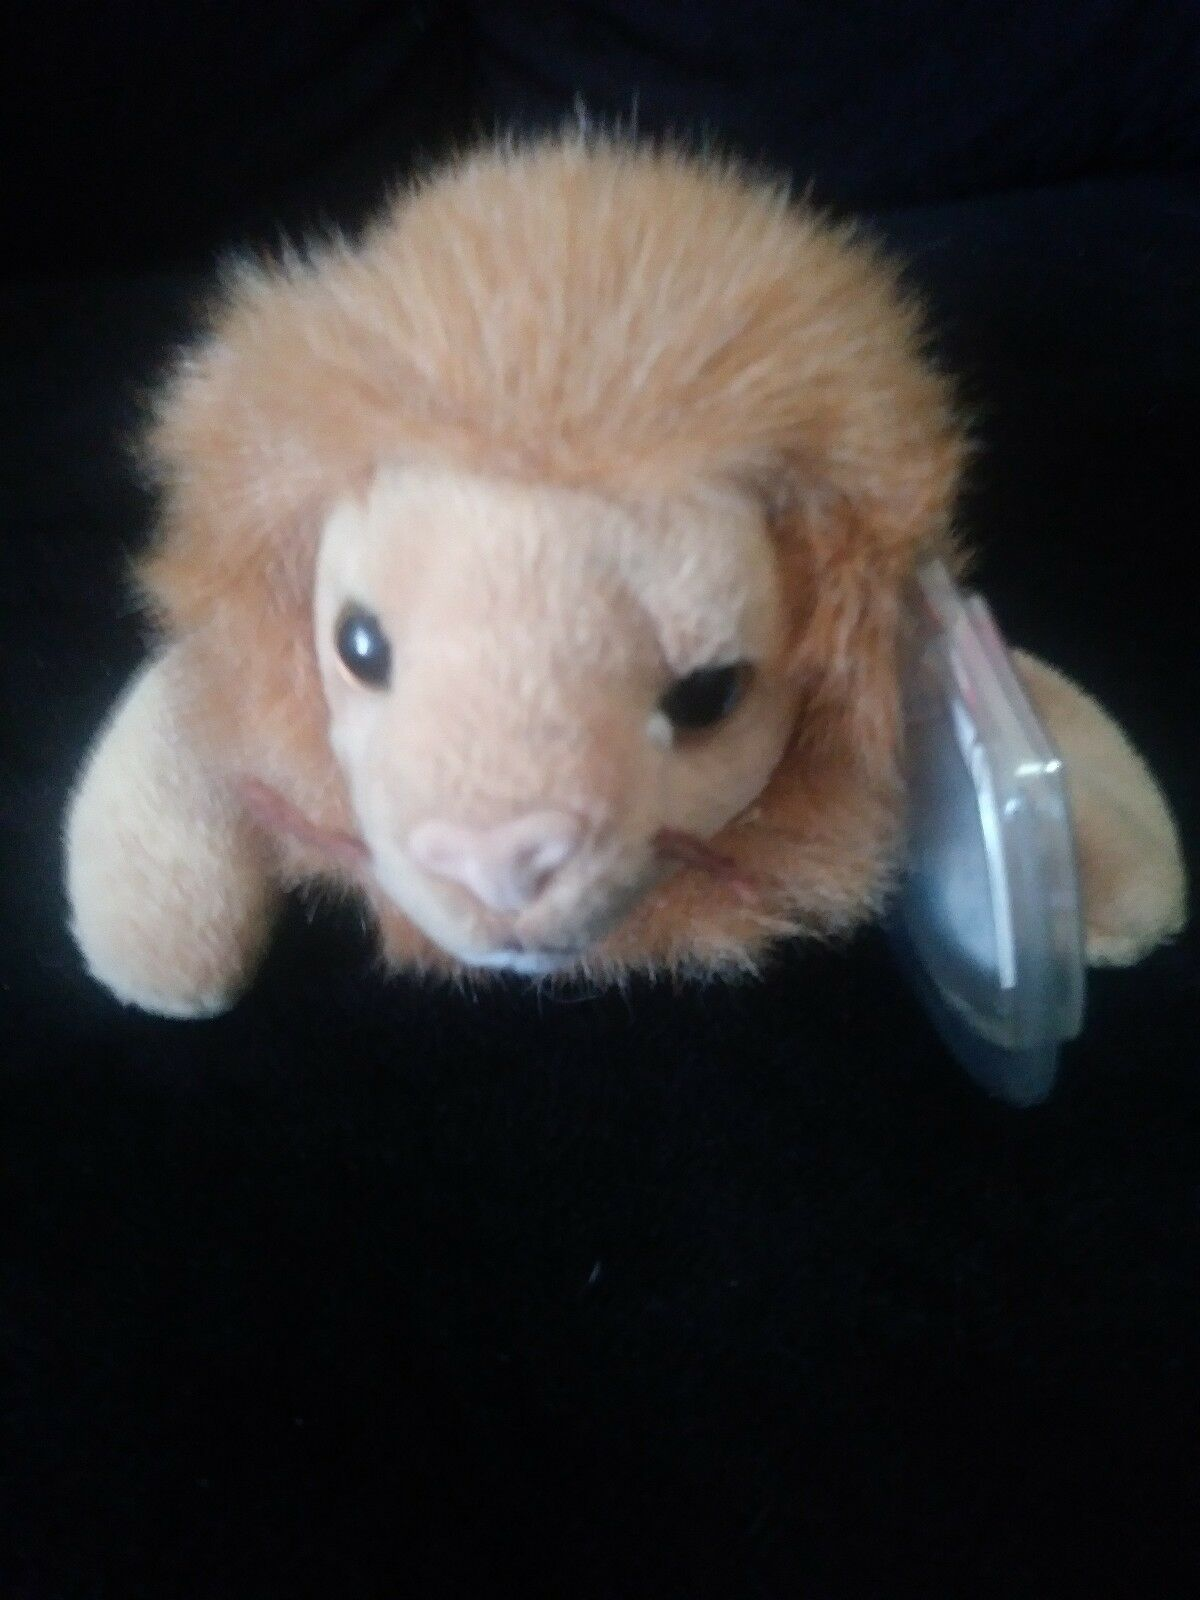 c25a49f1557 ... TY ROARY ORIGINAL BEANIE BABY - 1996 LION ROARY TY (With Errors) Very  Rare. ""